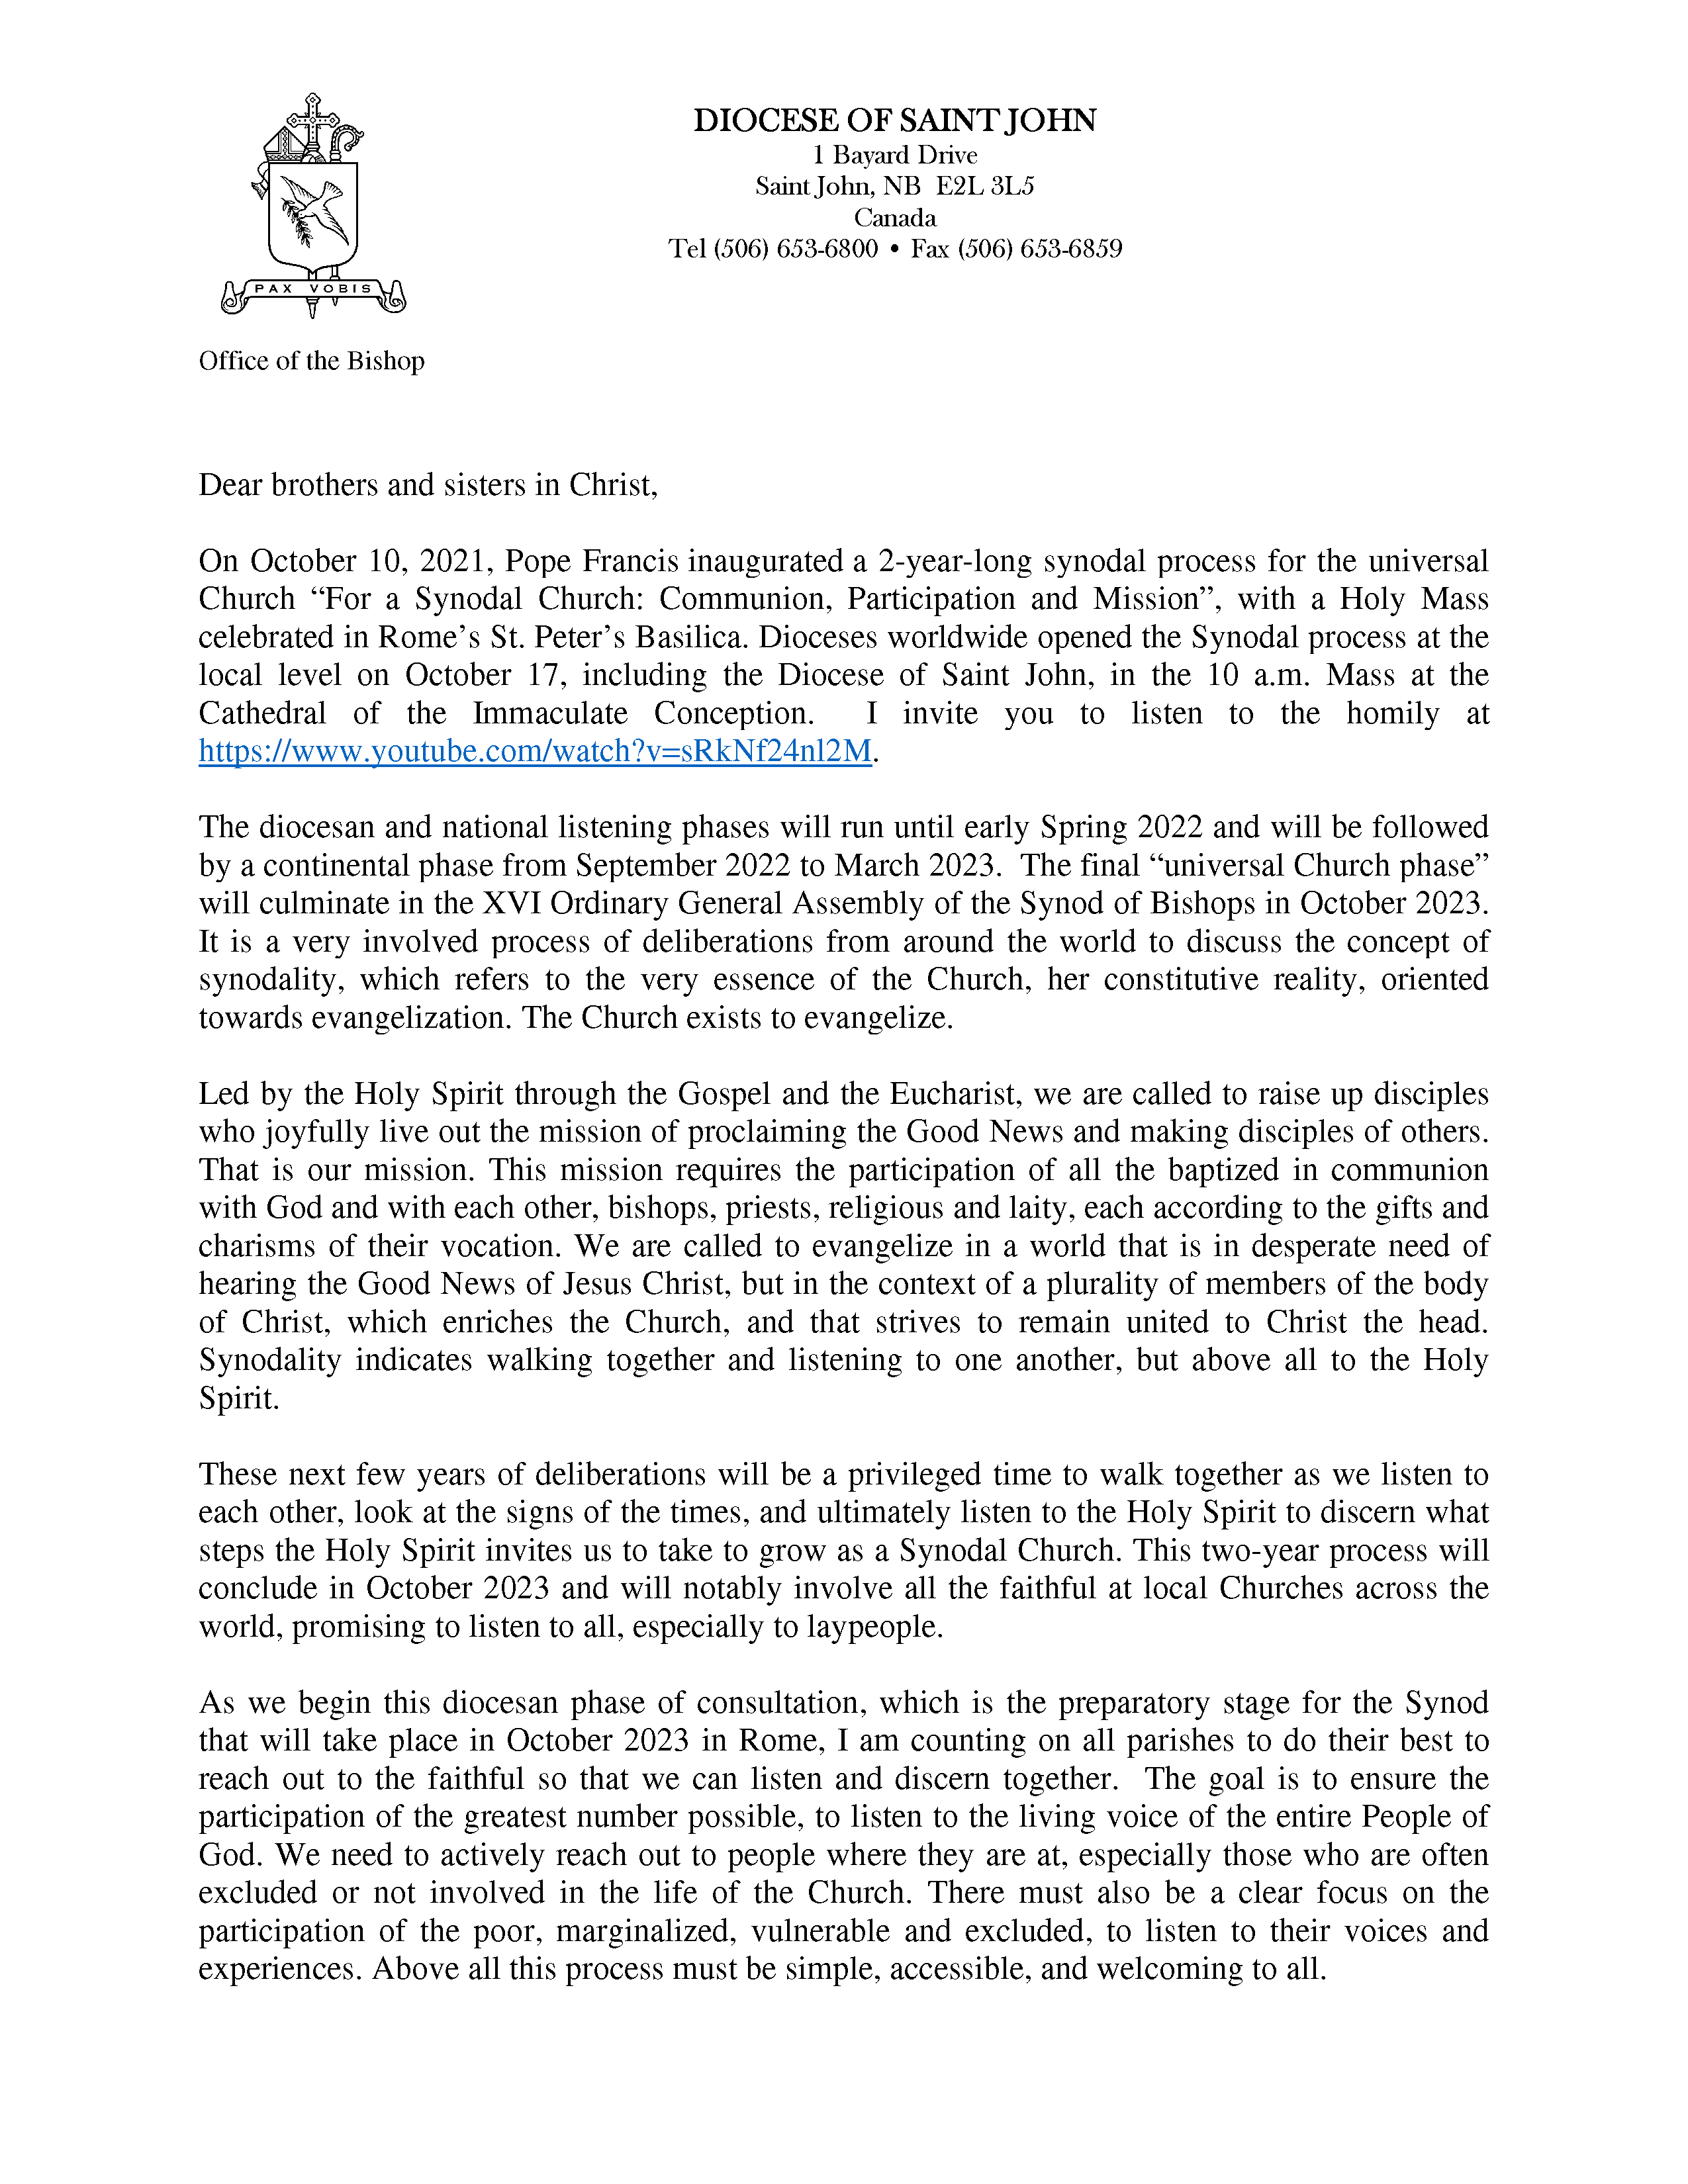 Synod letter